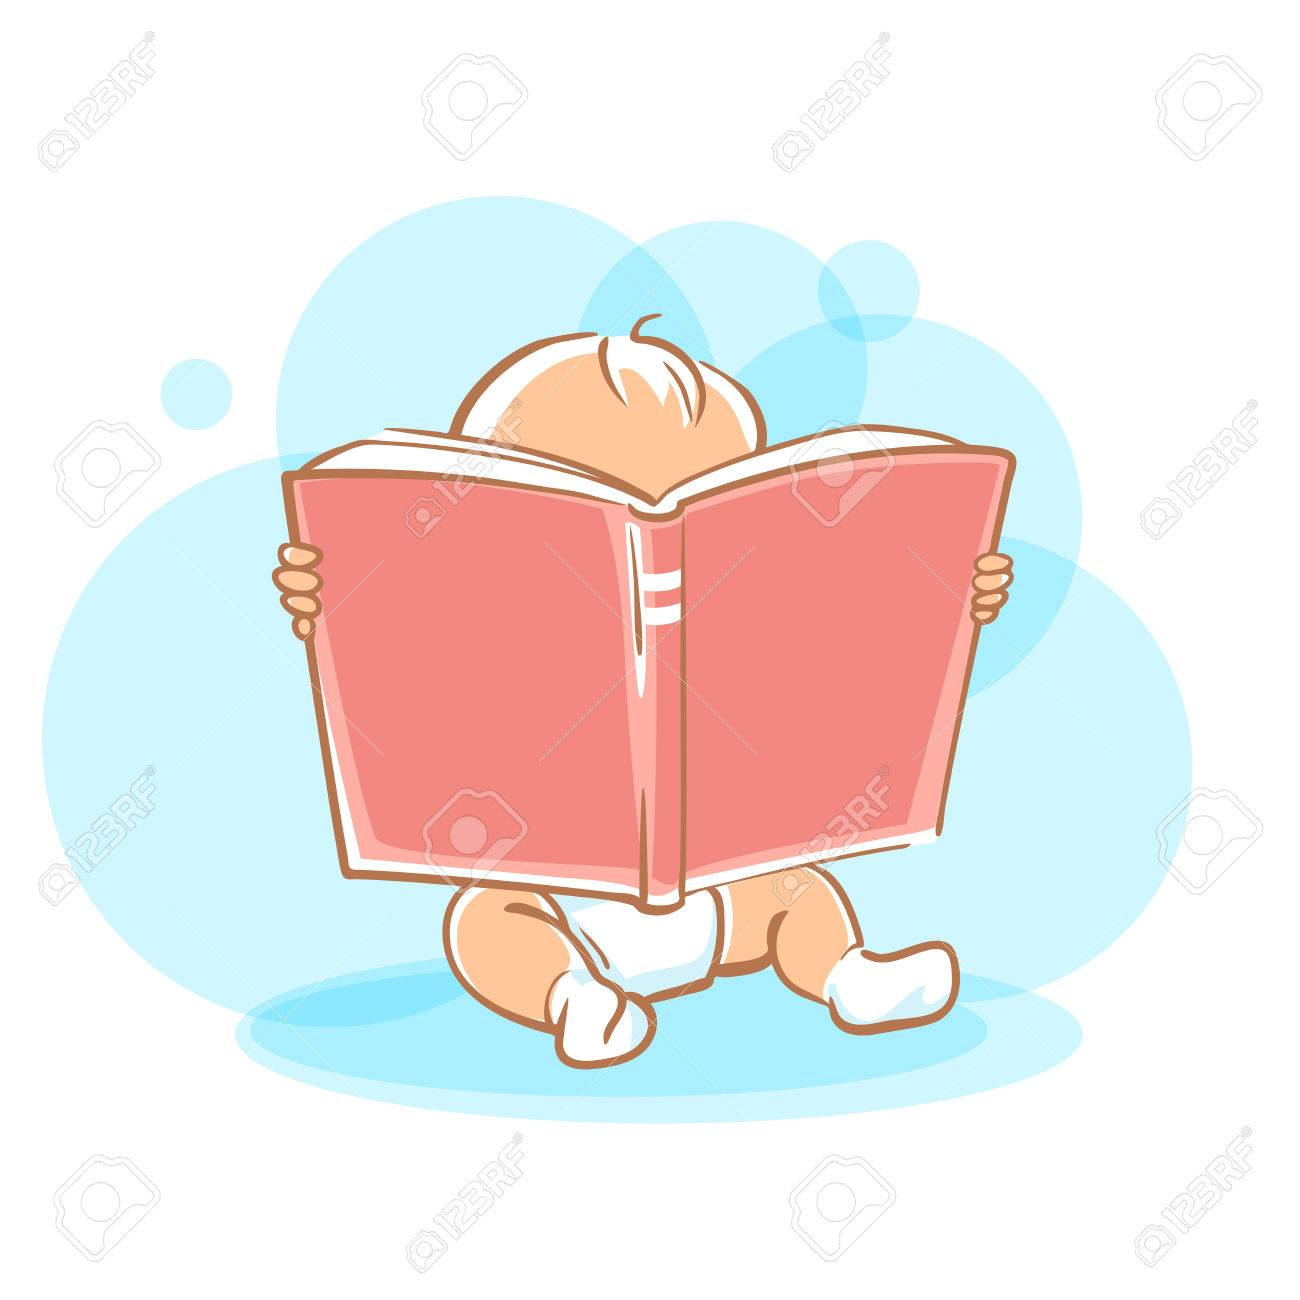 Genius baby in diaper holding open book, looking for answer. Toddler boy read sitting on floor. Concept of development of abilities of child and investment in the future. - 52237341